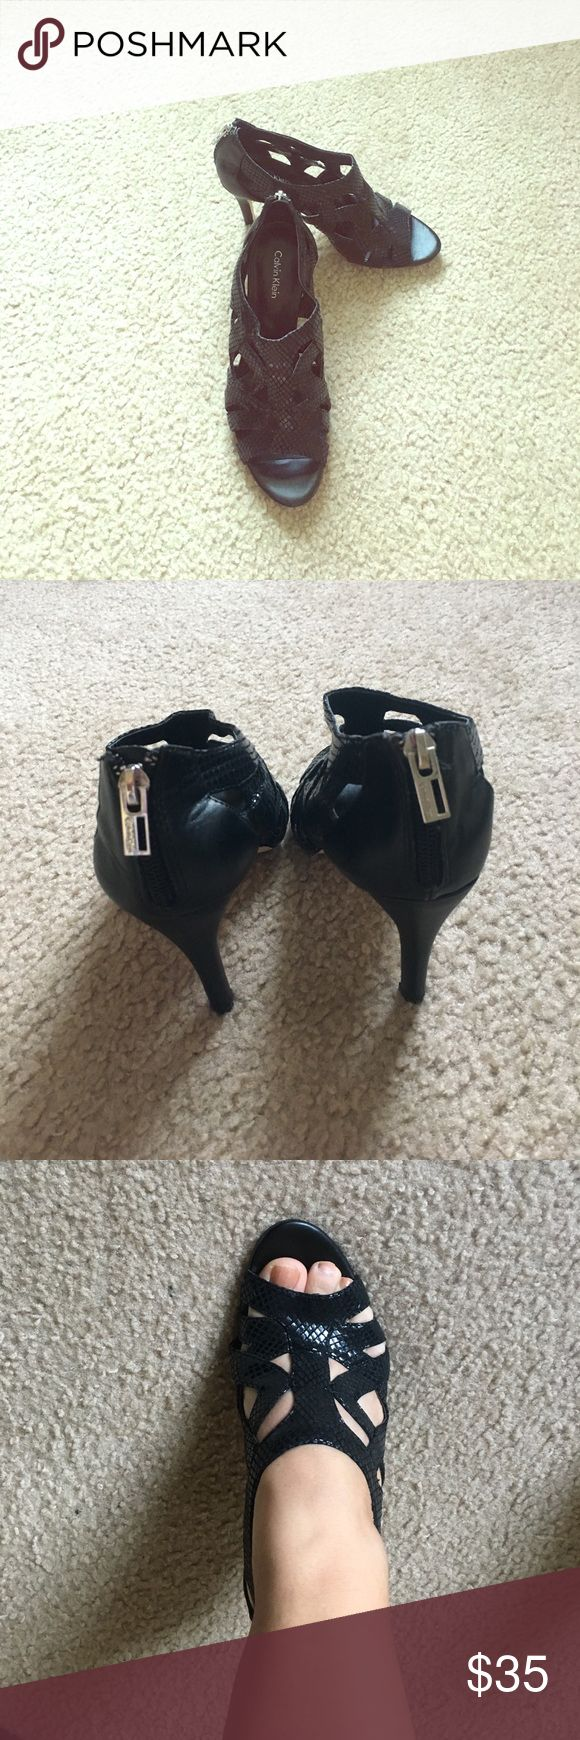 Calvin Klein black shoes Like new. Any questions let me know Calvin Klein Shoes Heels